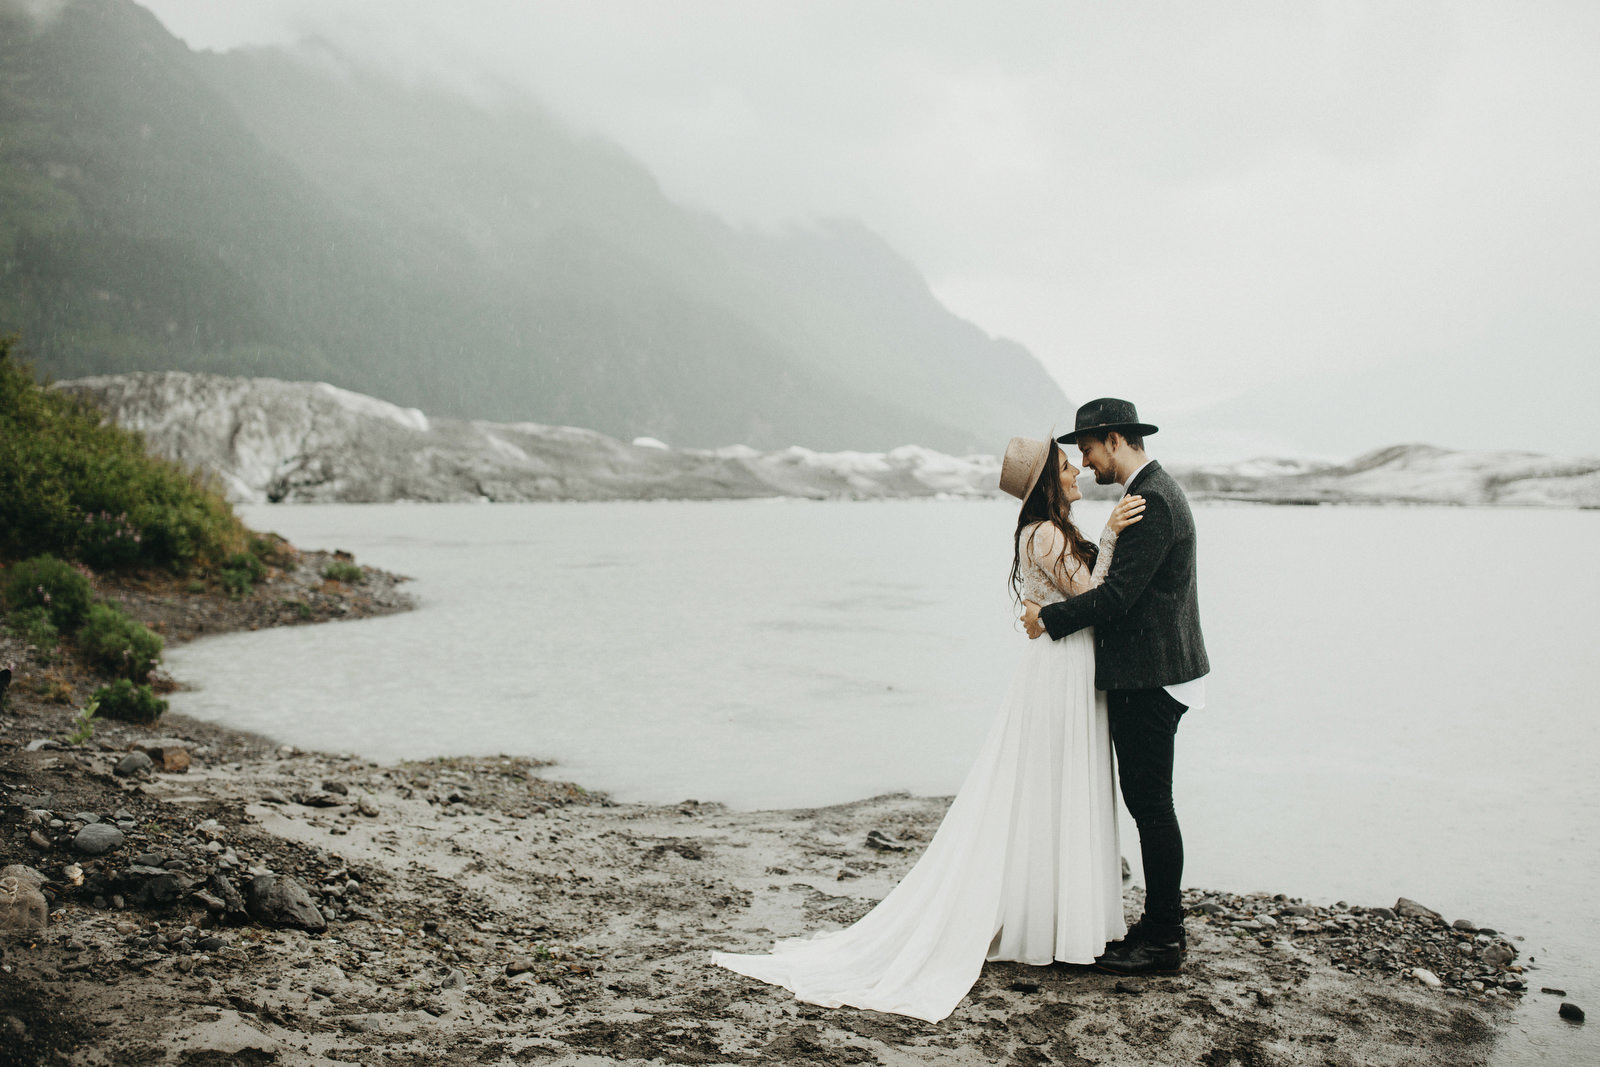 athena-and-camron-alaska-elopement-wedding-inspiration-india-earl-athena-grace-glacier-lagoon-wedding73